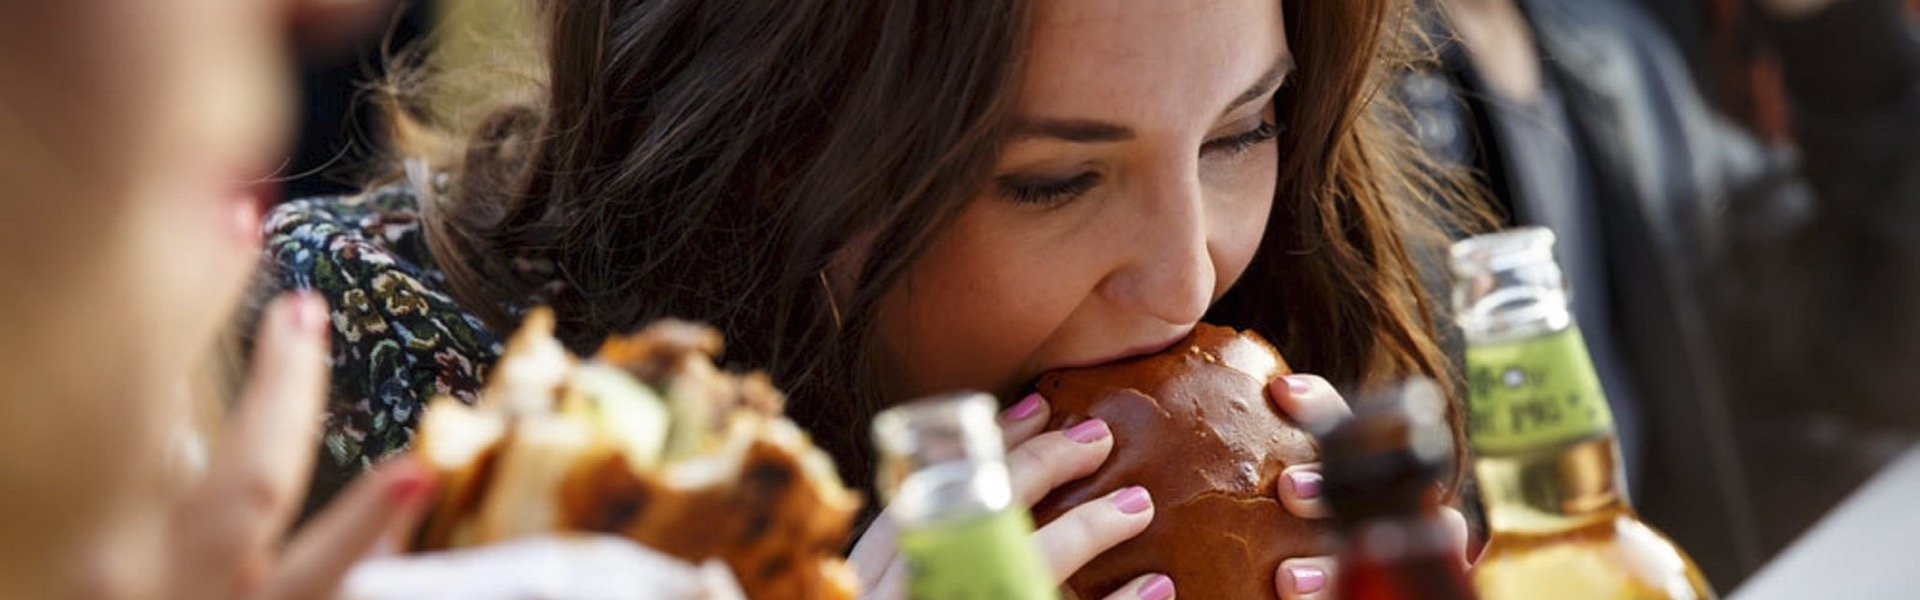 https://streethafen.com/wp-content/uploads/Girl-eating-Hamburger-1920x600.jpg